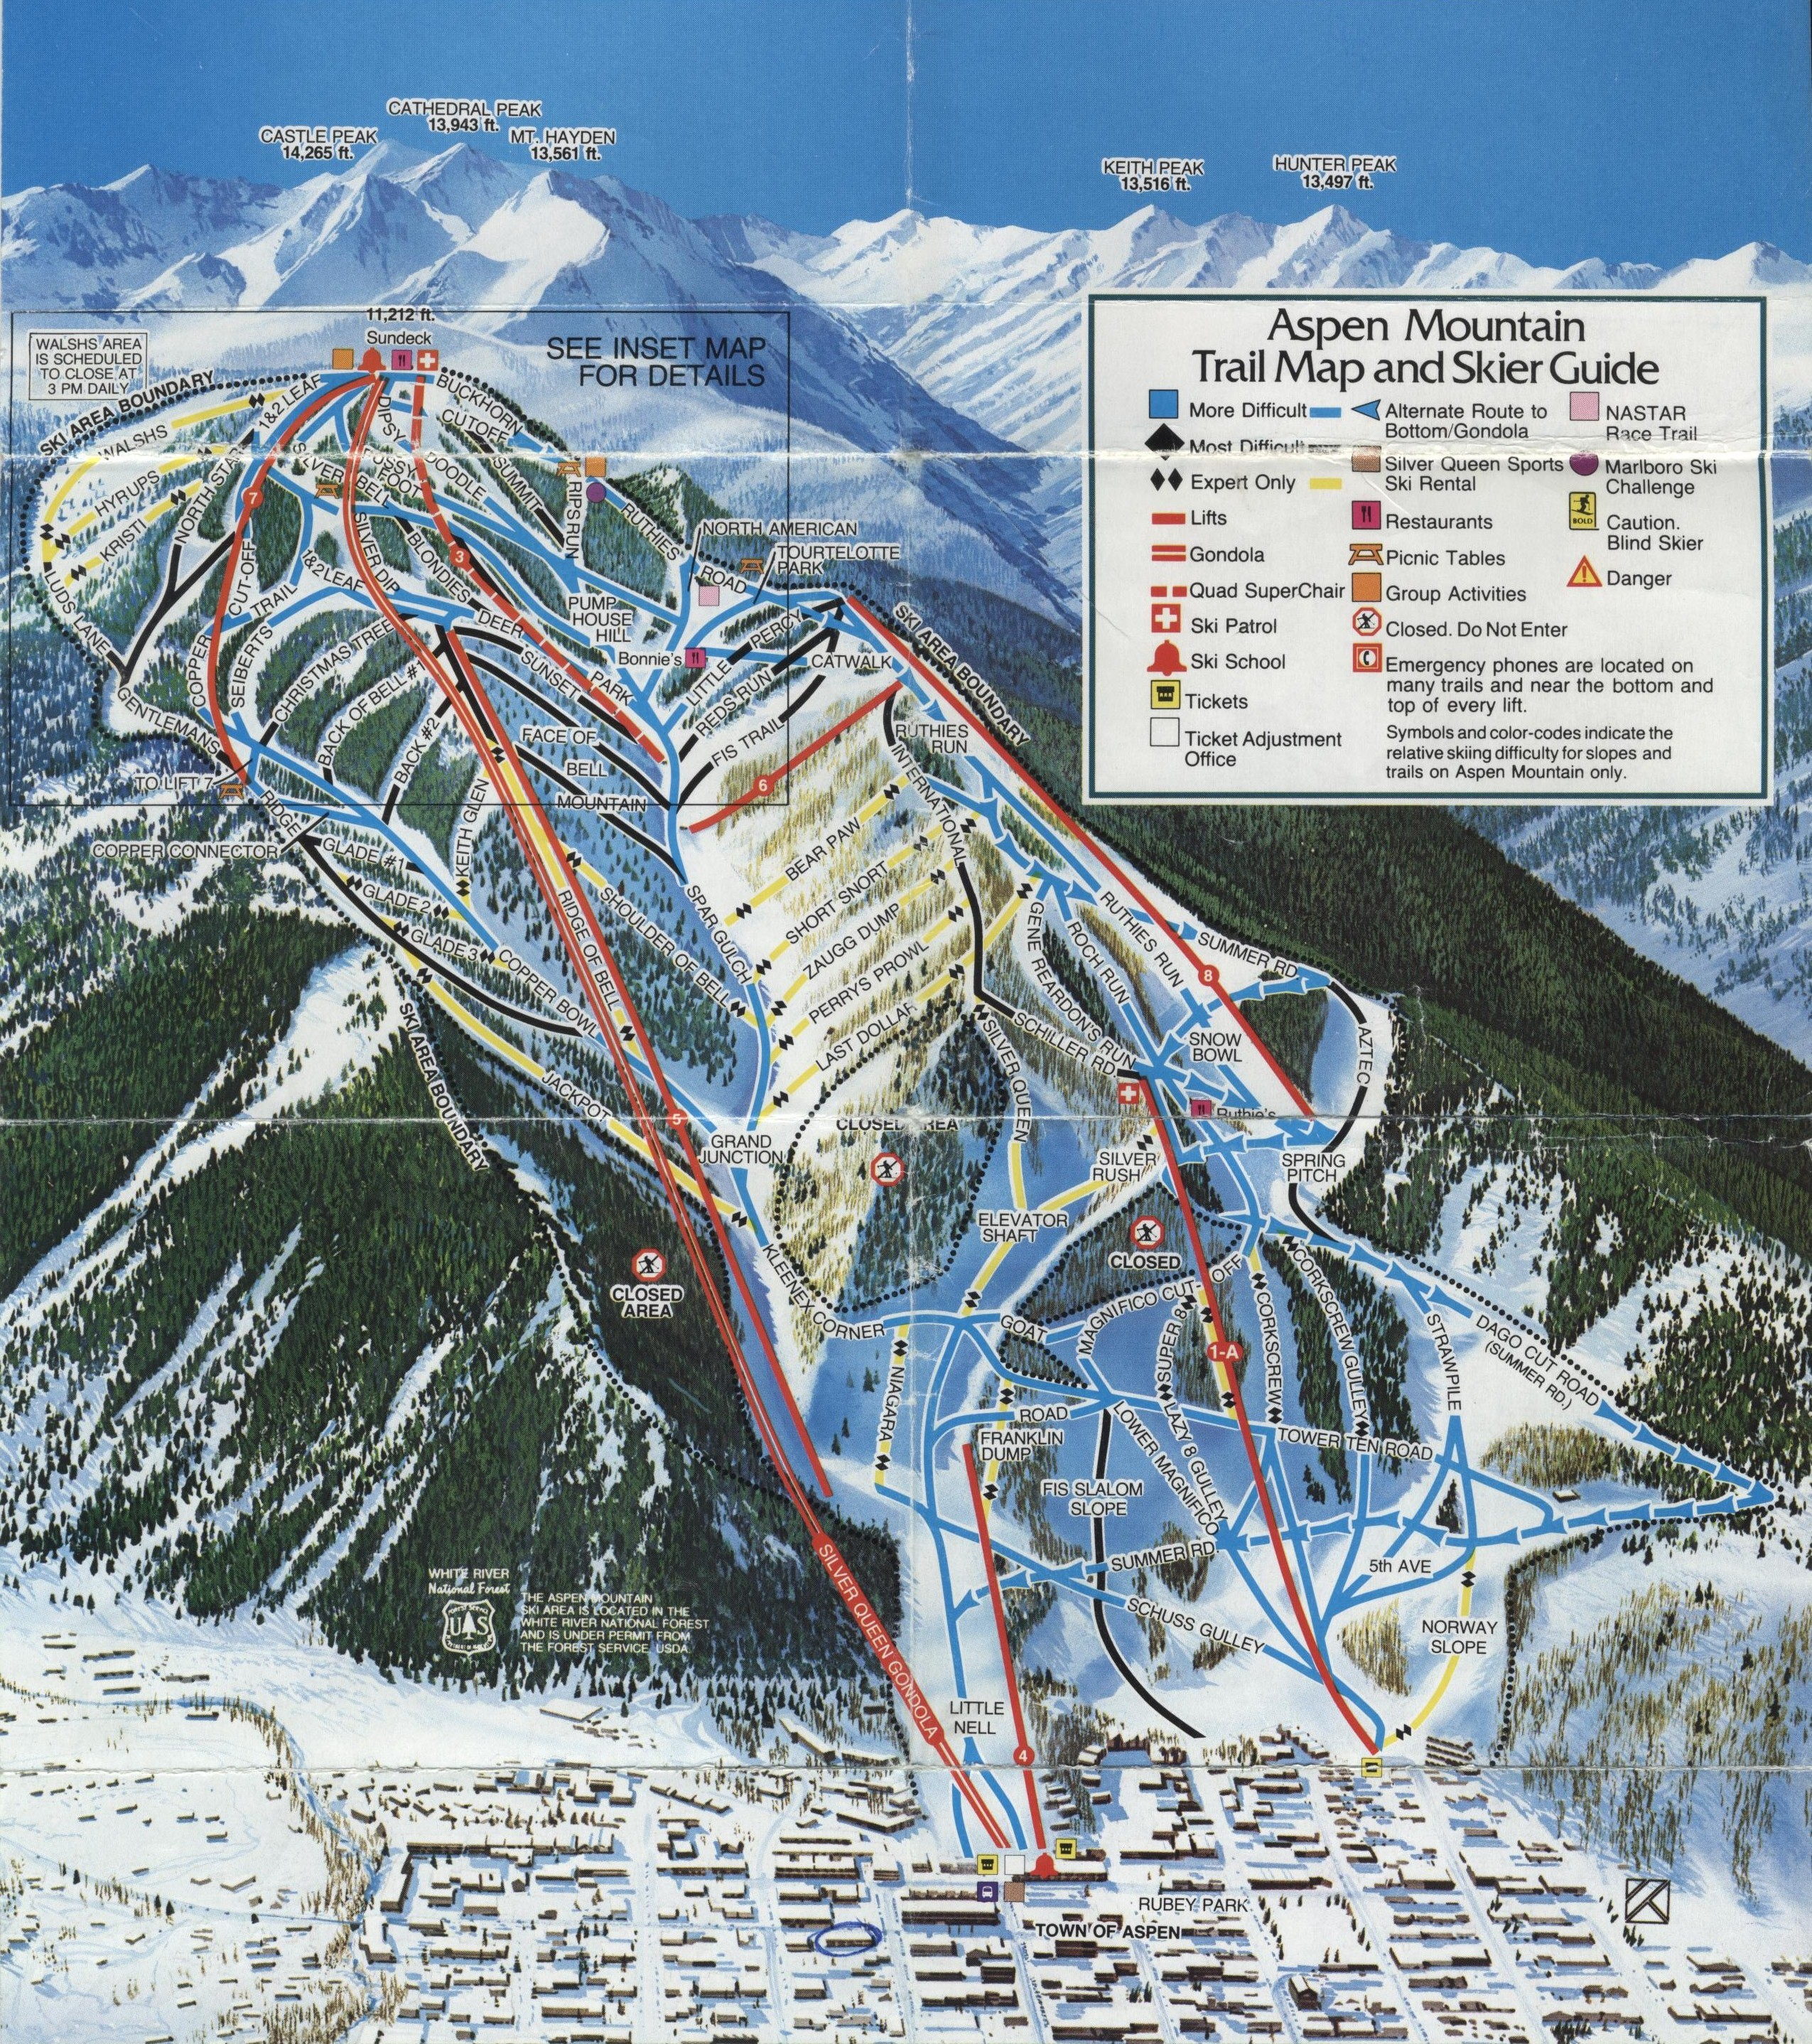 colorado ski resort map with 1031 on Skiresort besides 1031 additionally Westin Riverfront Resort And Spa At Beaver Creek Mountain also 313115 as well 503.